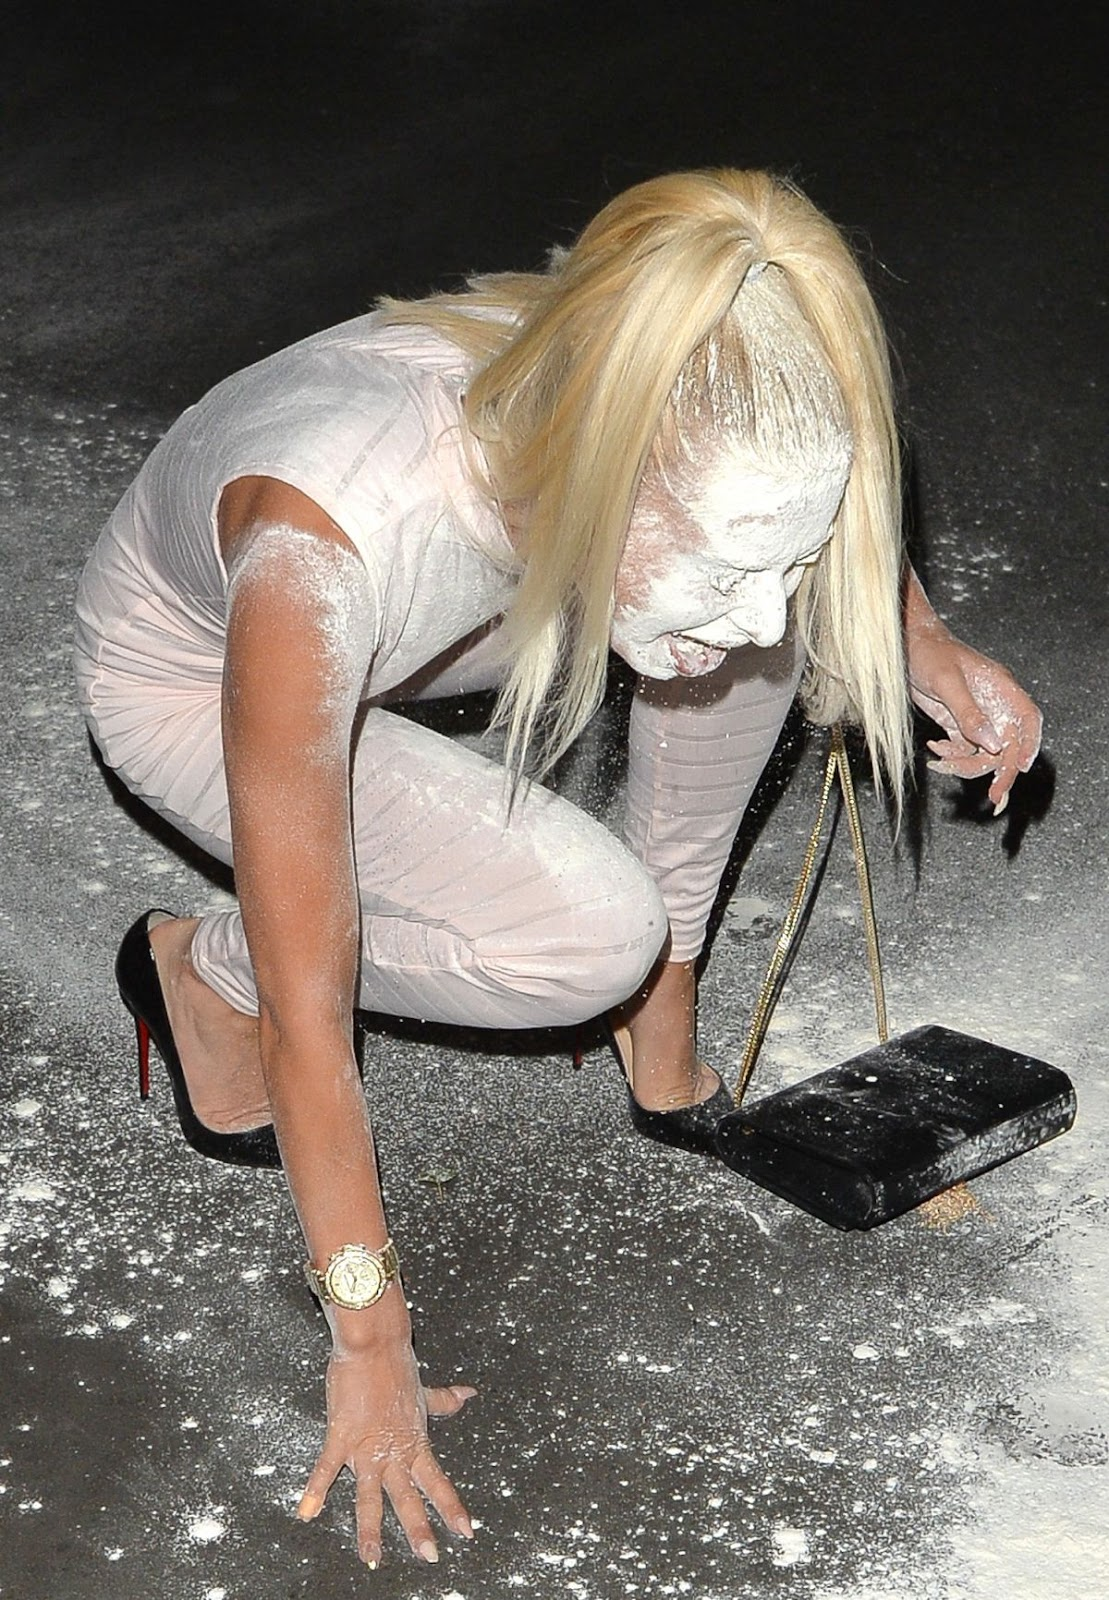 Ex On The Beach star Holly Rickwood getting Flour Bombed Leaving a Pub in west London